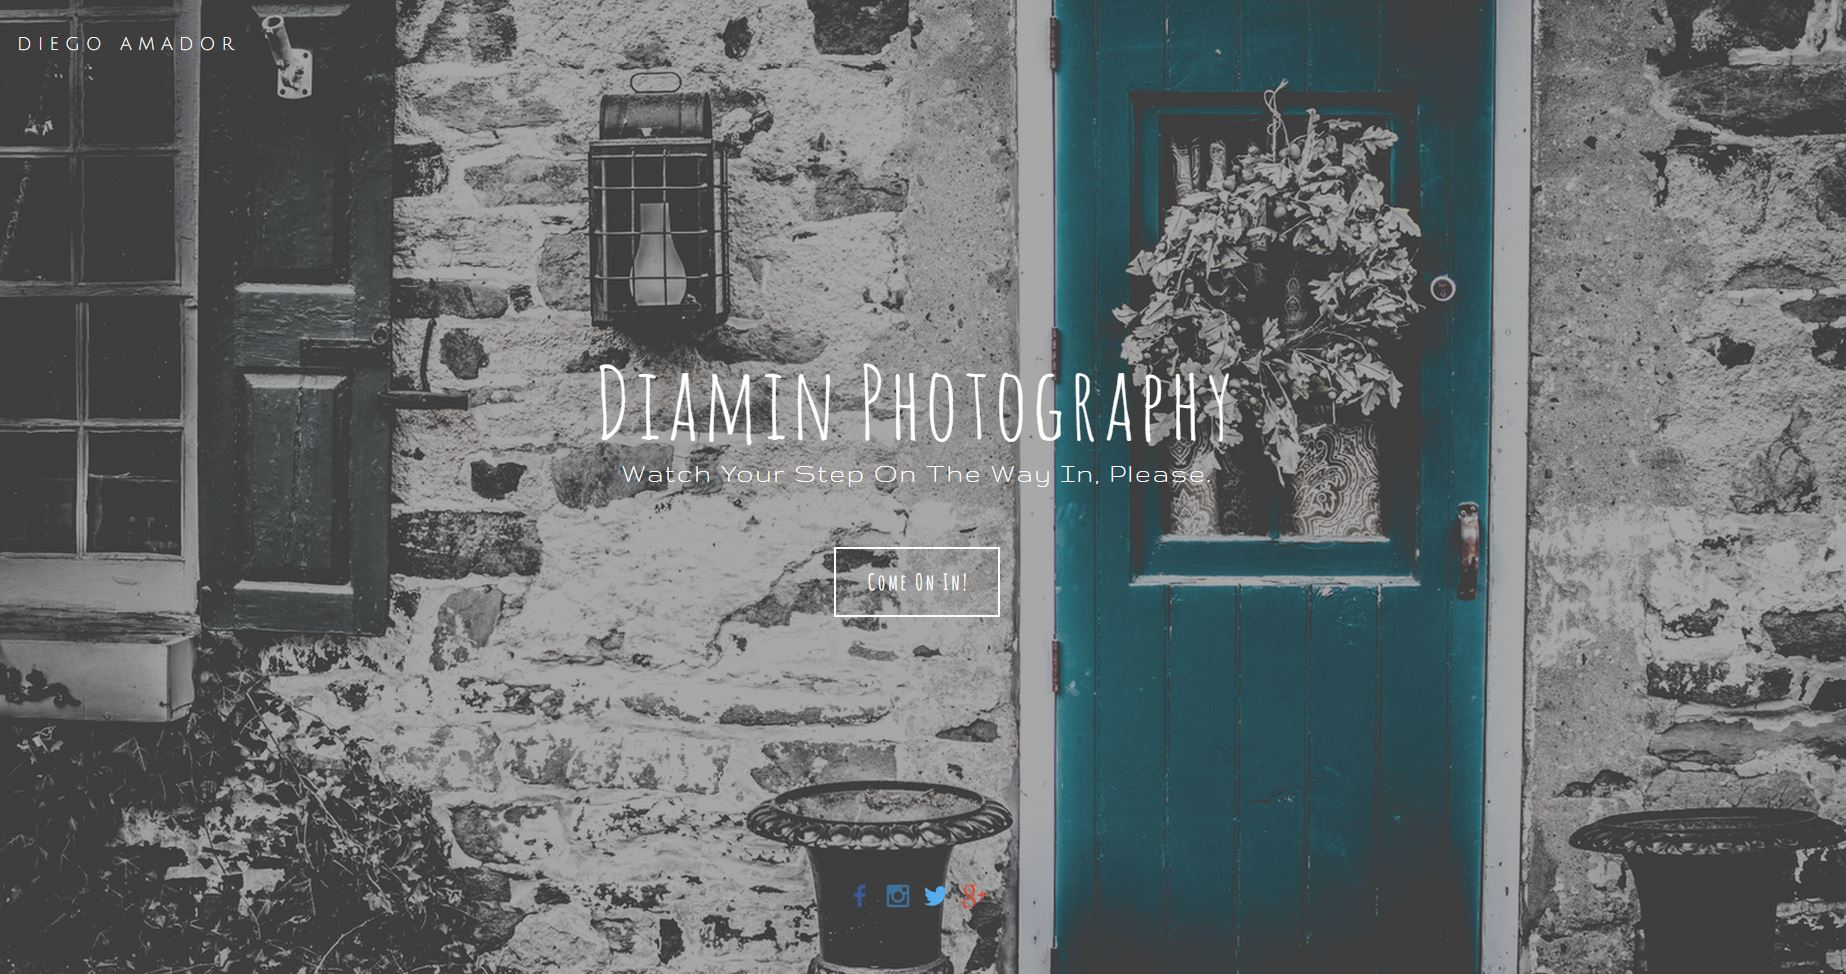 Diamin Photography